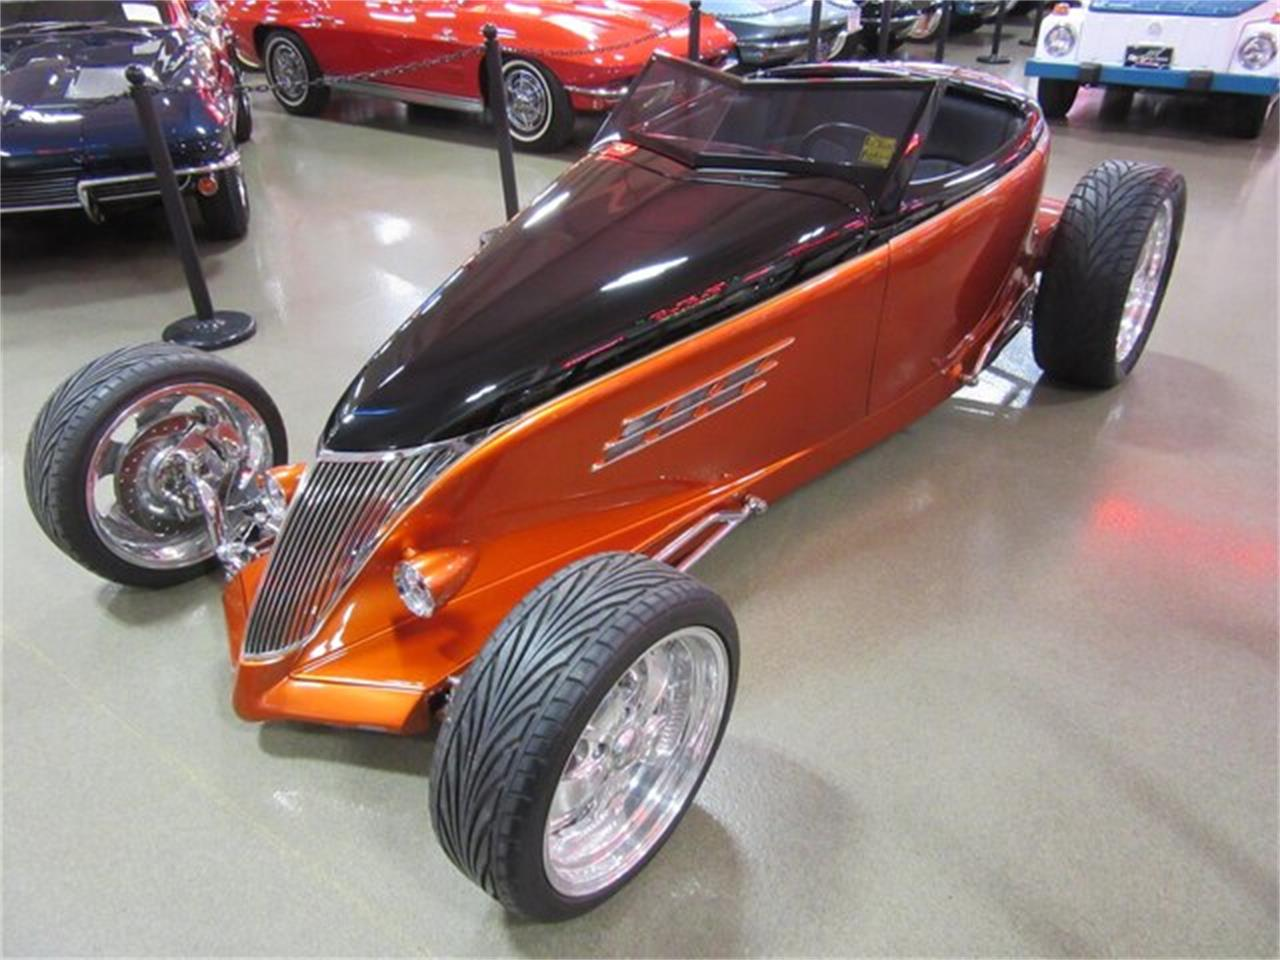 2006 Custom Roadster for sale in Greenwood, IN – photo 18